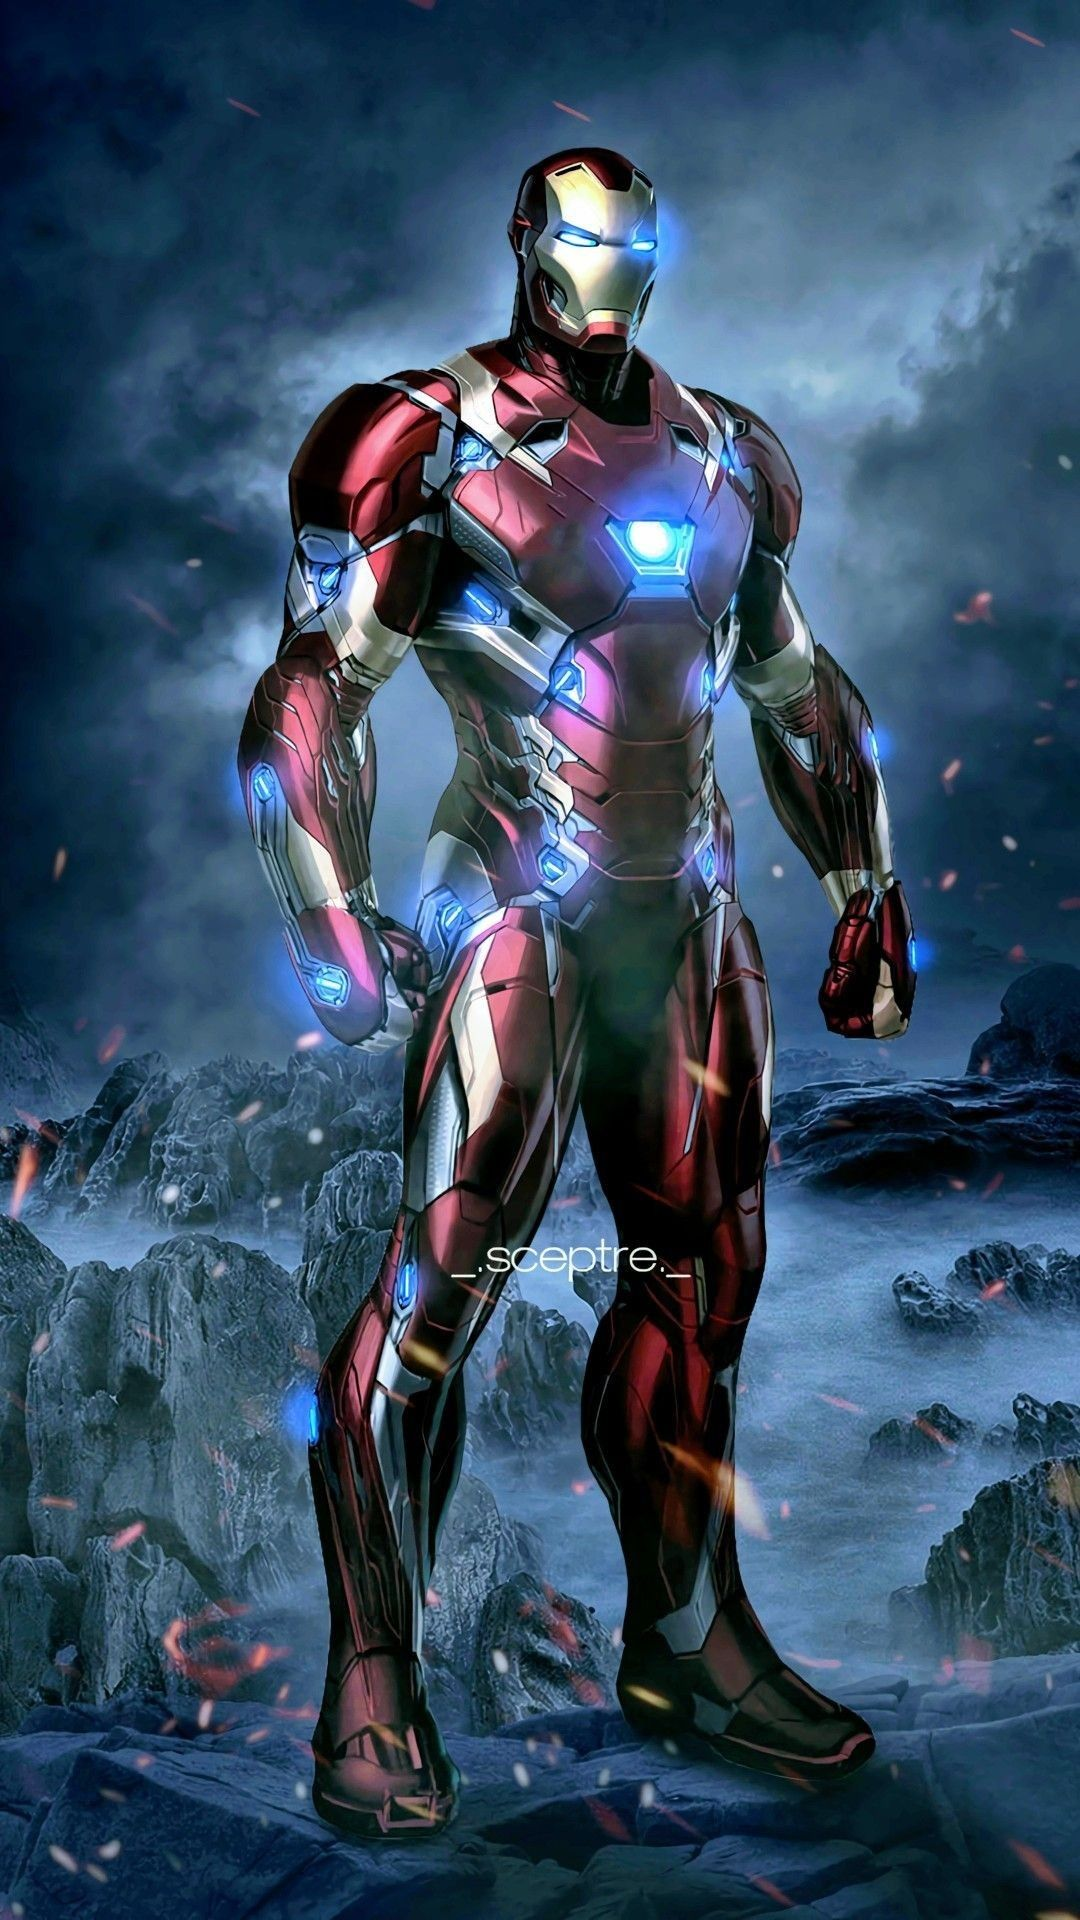 Best Wallpapers For Your Iphone And Ipad Inspirational Wallpapers Iron Man Art Iron Man Artwork Iron Man Photos